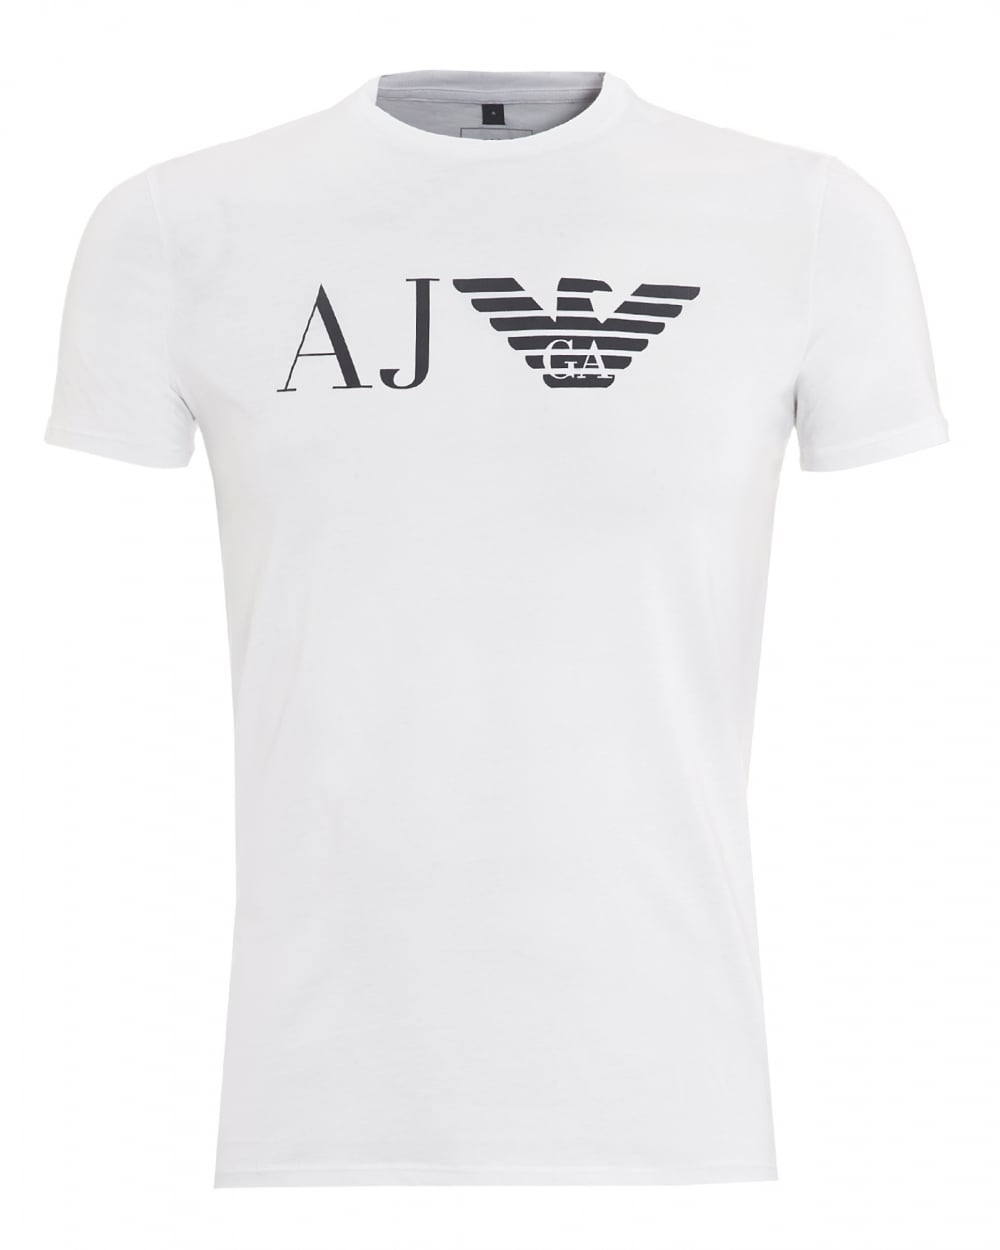 armani jeans mens aj logo t shirt slim fit white tee. Black Bedroom Furniture Sets. Home Design Ideas